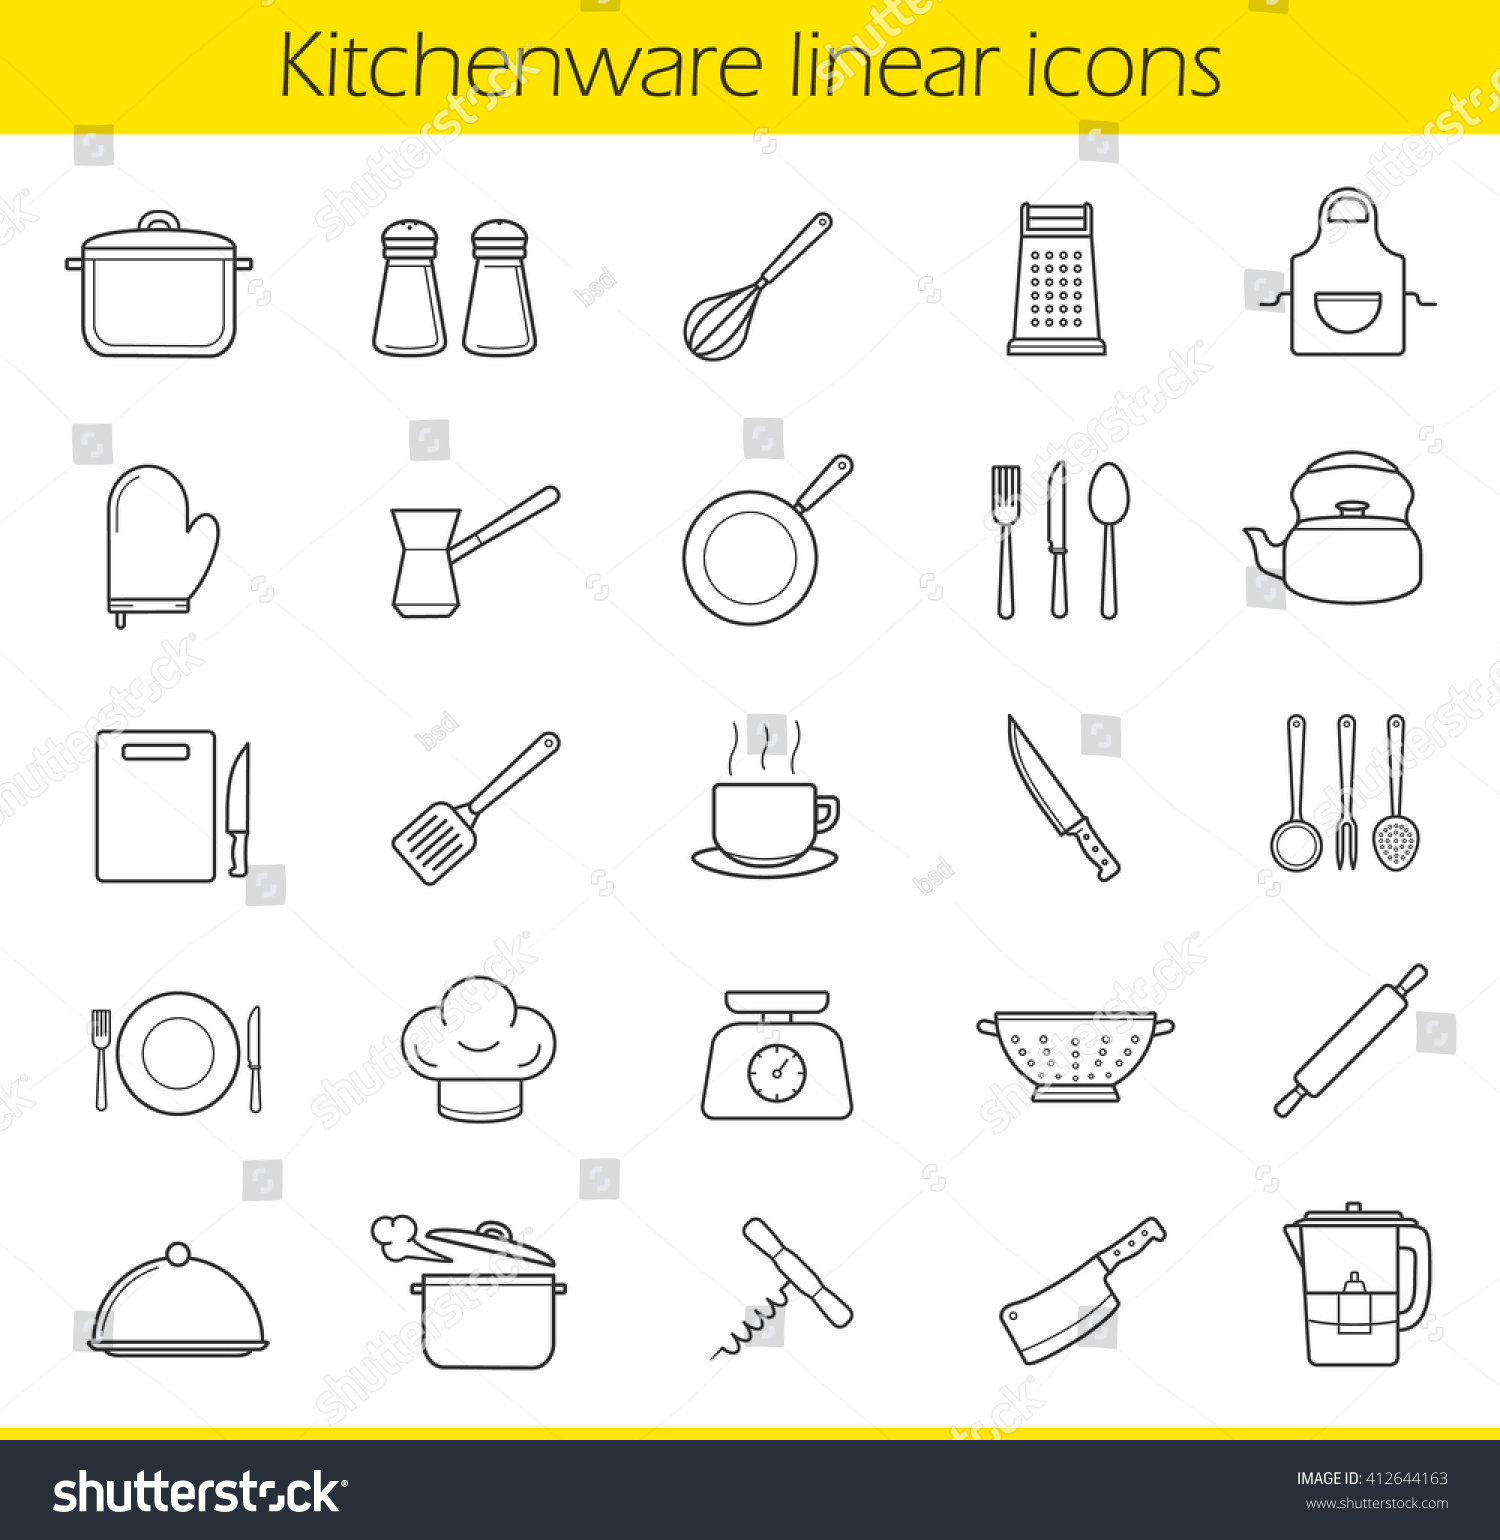 Kitchenware Linear Icons Set Kitchen Tools Stock Vector. Kitchen Design Software Mac. Beautiful Kitchen Designs Photos. Outdoor Kitchen Designs Houston. Portable Kitchen Island Designs. How To Design A Commercial Kitchen. Kitchen Designs And Layout. Modern Wet Kitchen Design. Kitchen Area Design